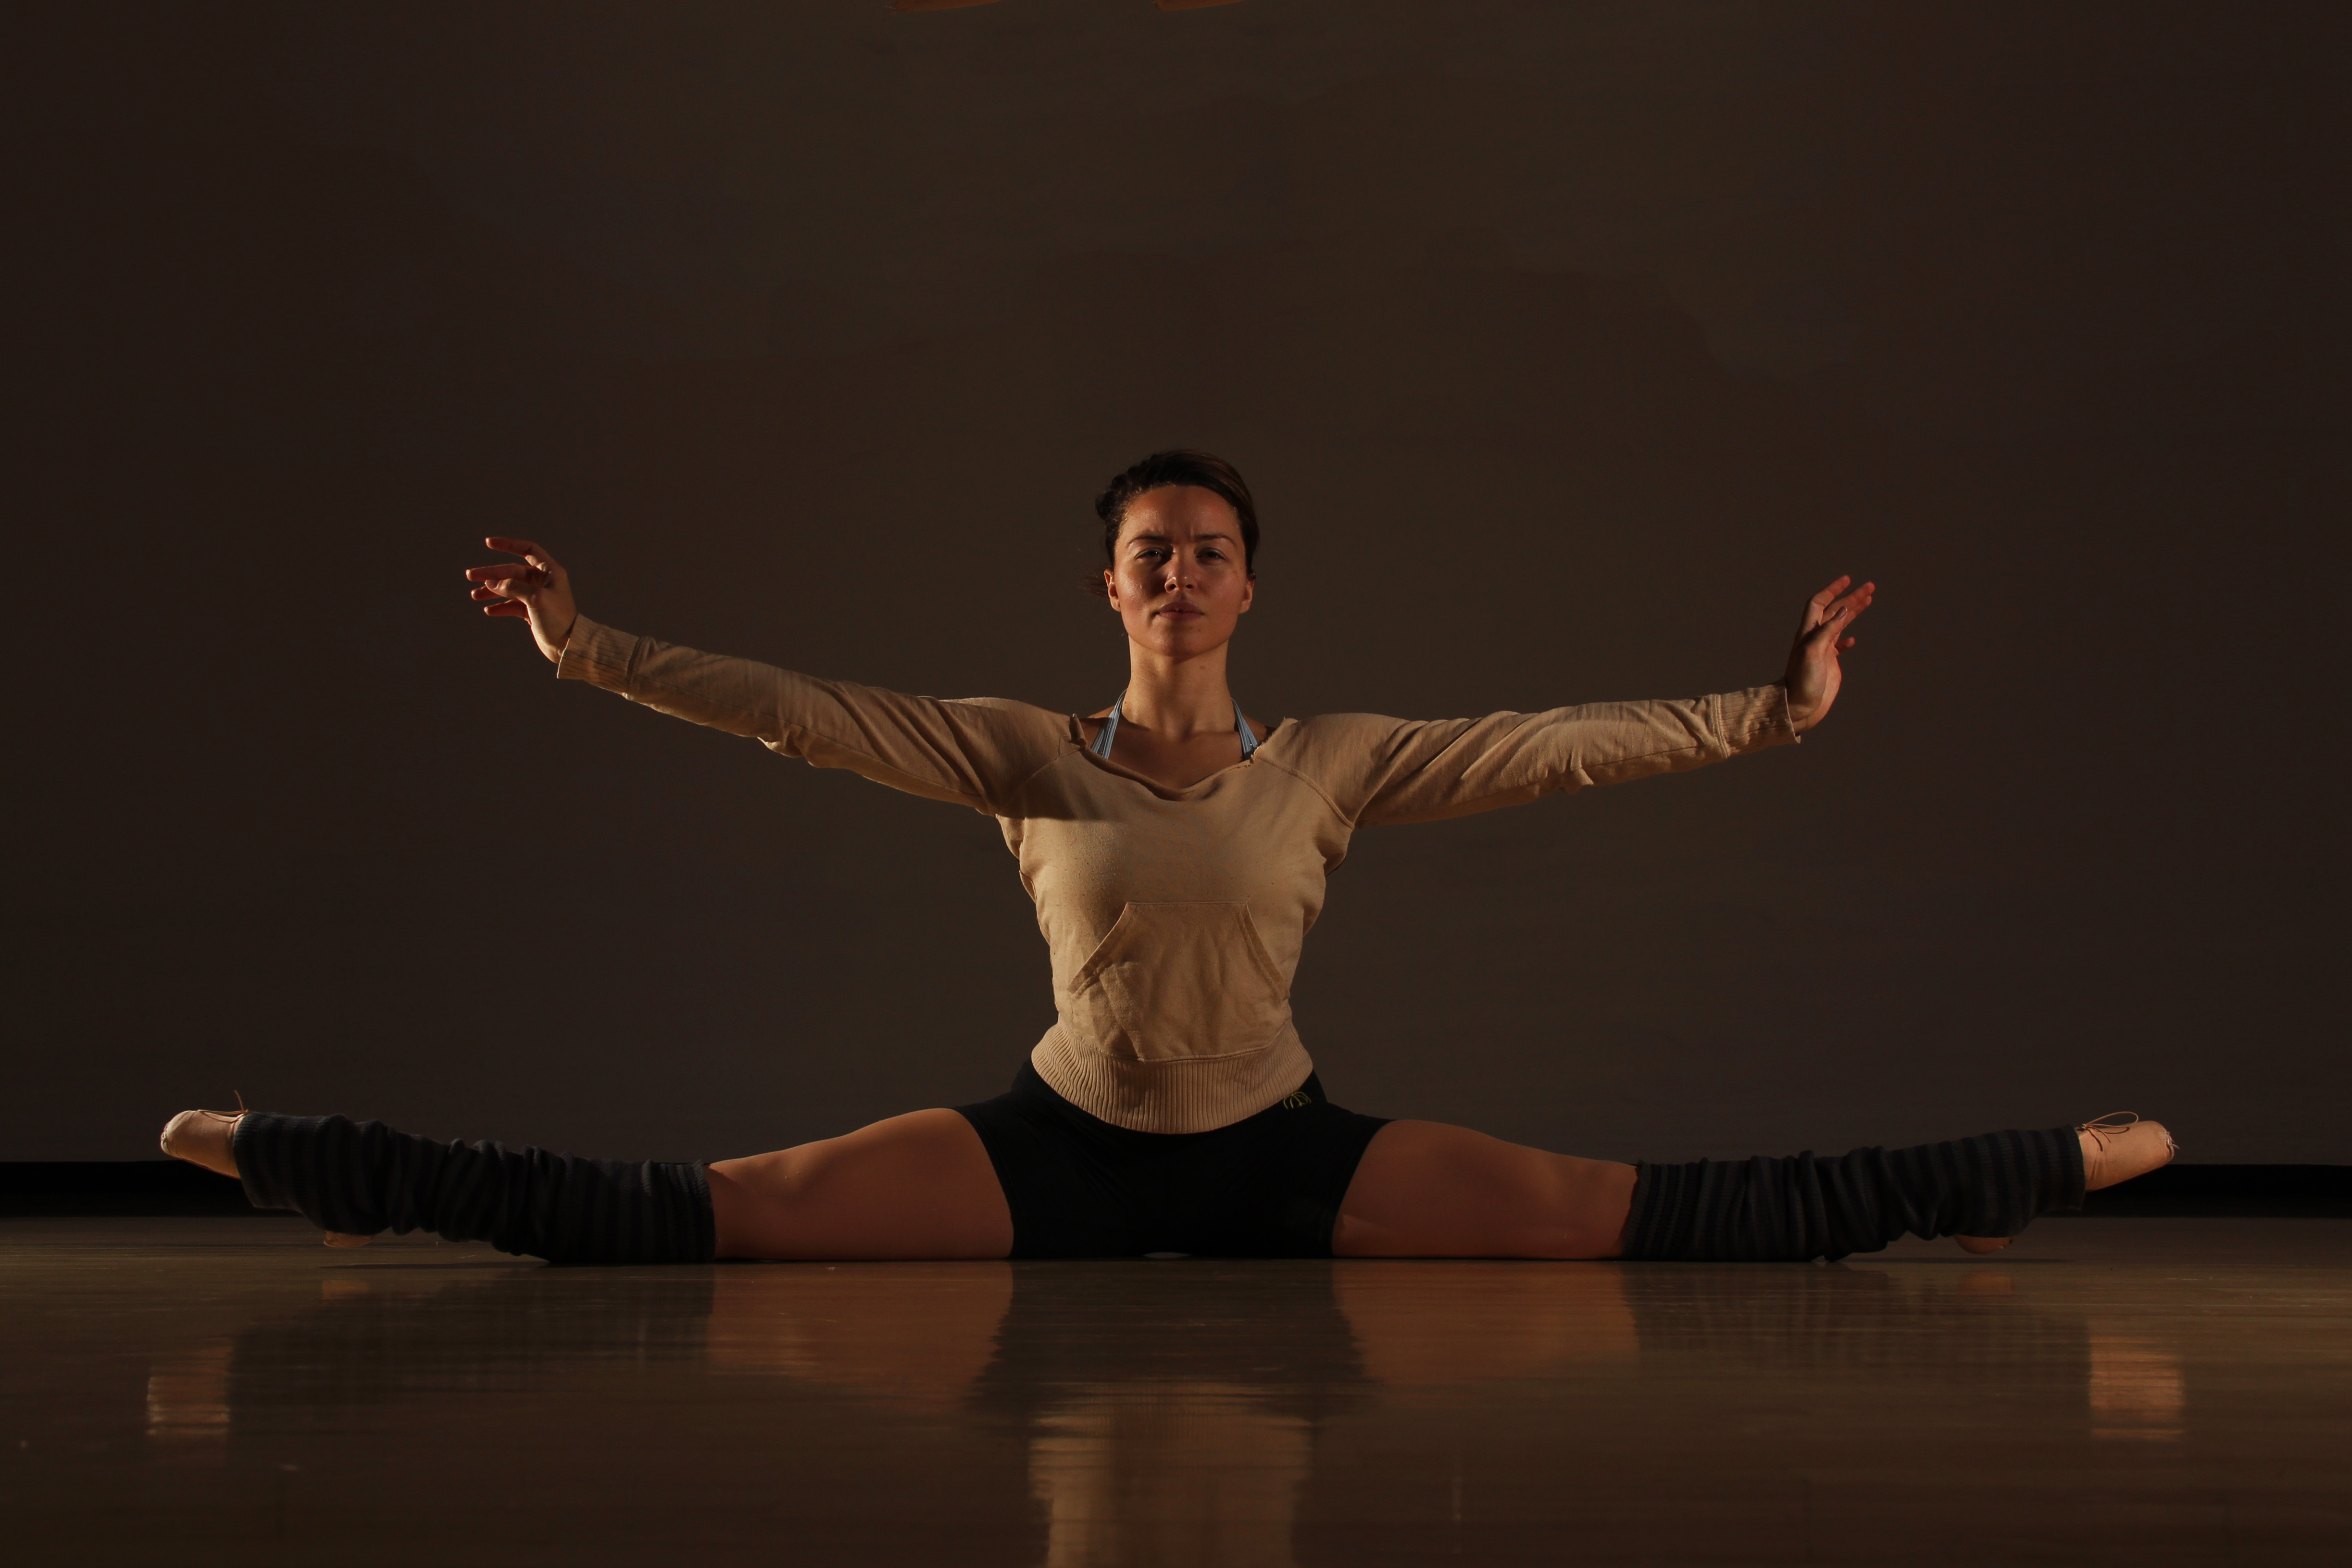 Student dances through challenges, seeks to share peace